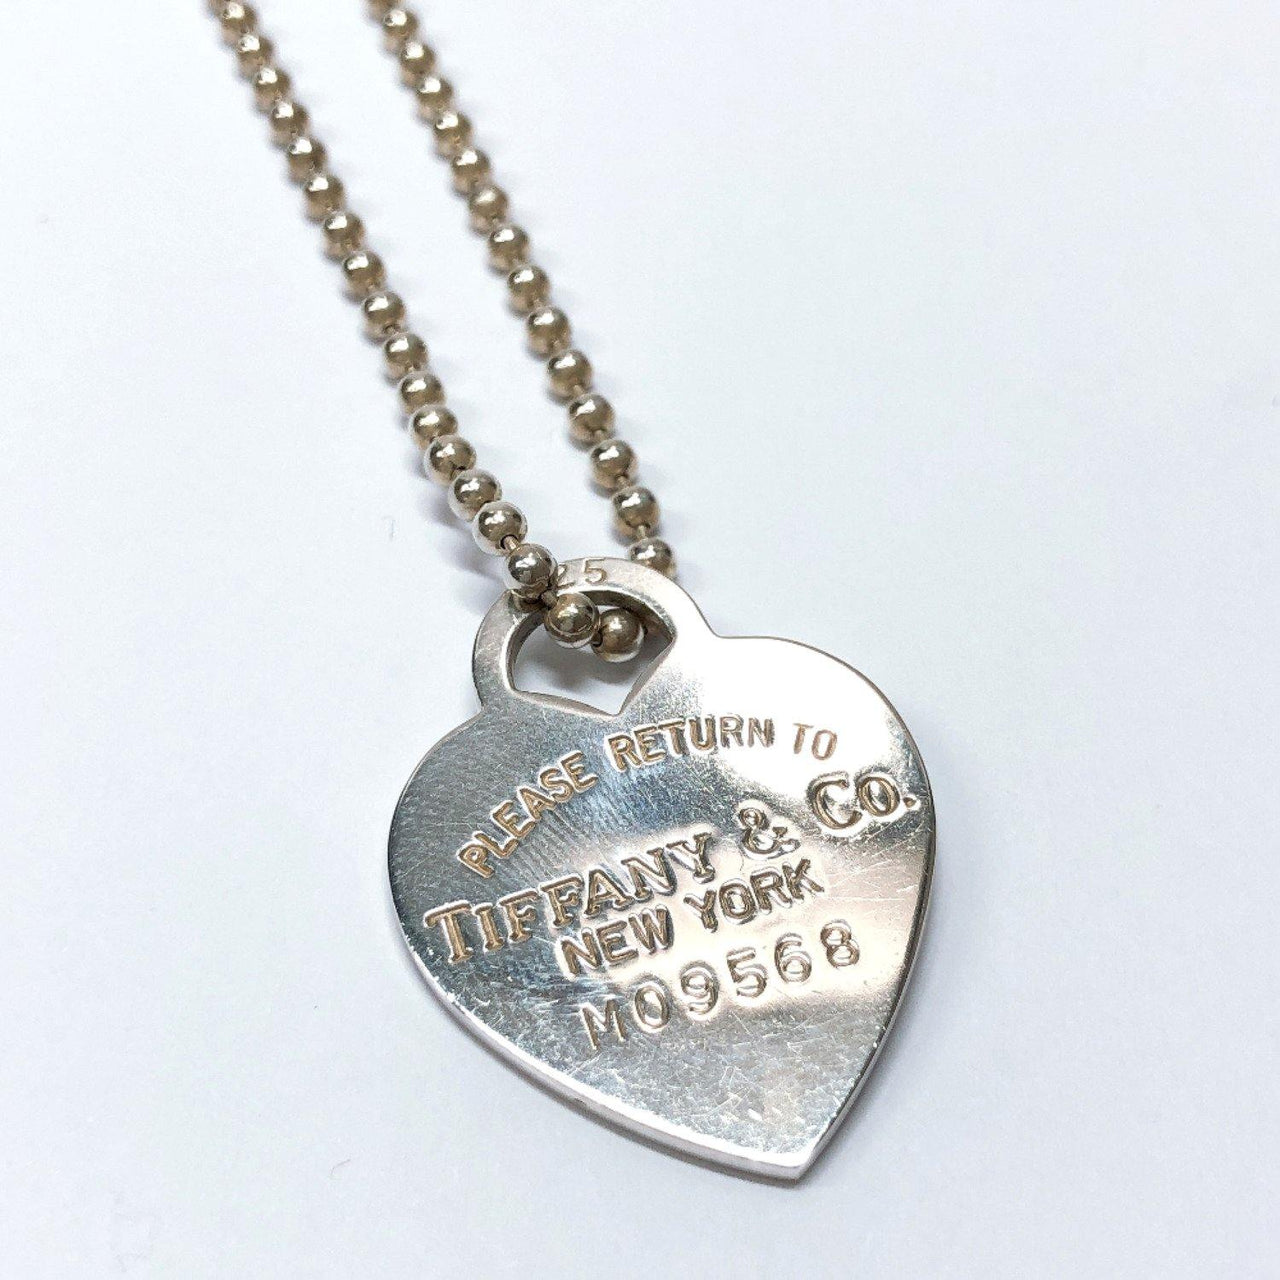 TIFFANY&Co. Necklace Return to TIFFANY & Co. heart Silver925 Silver Women Used